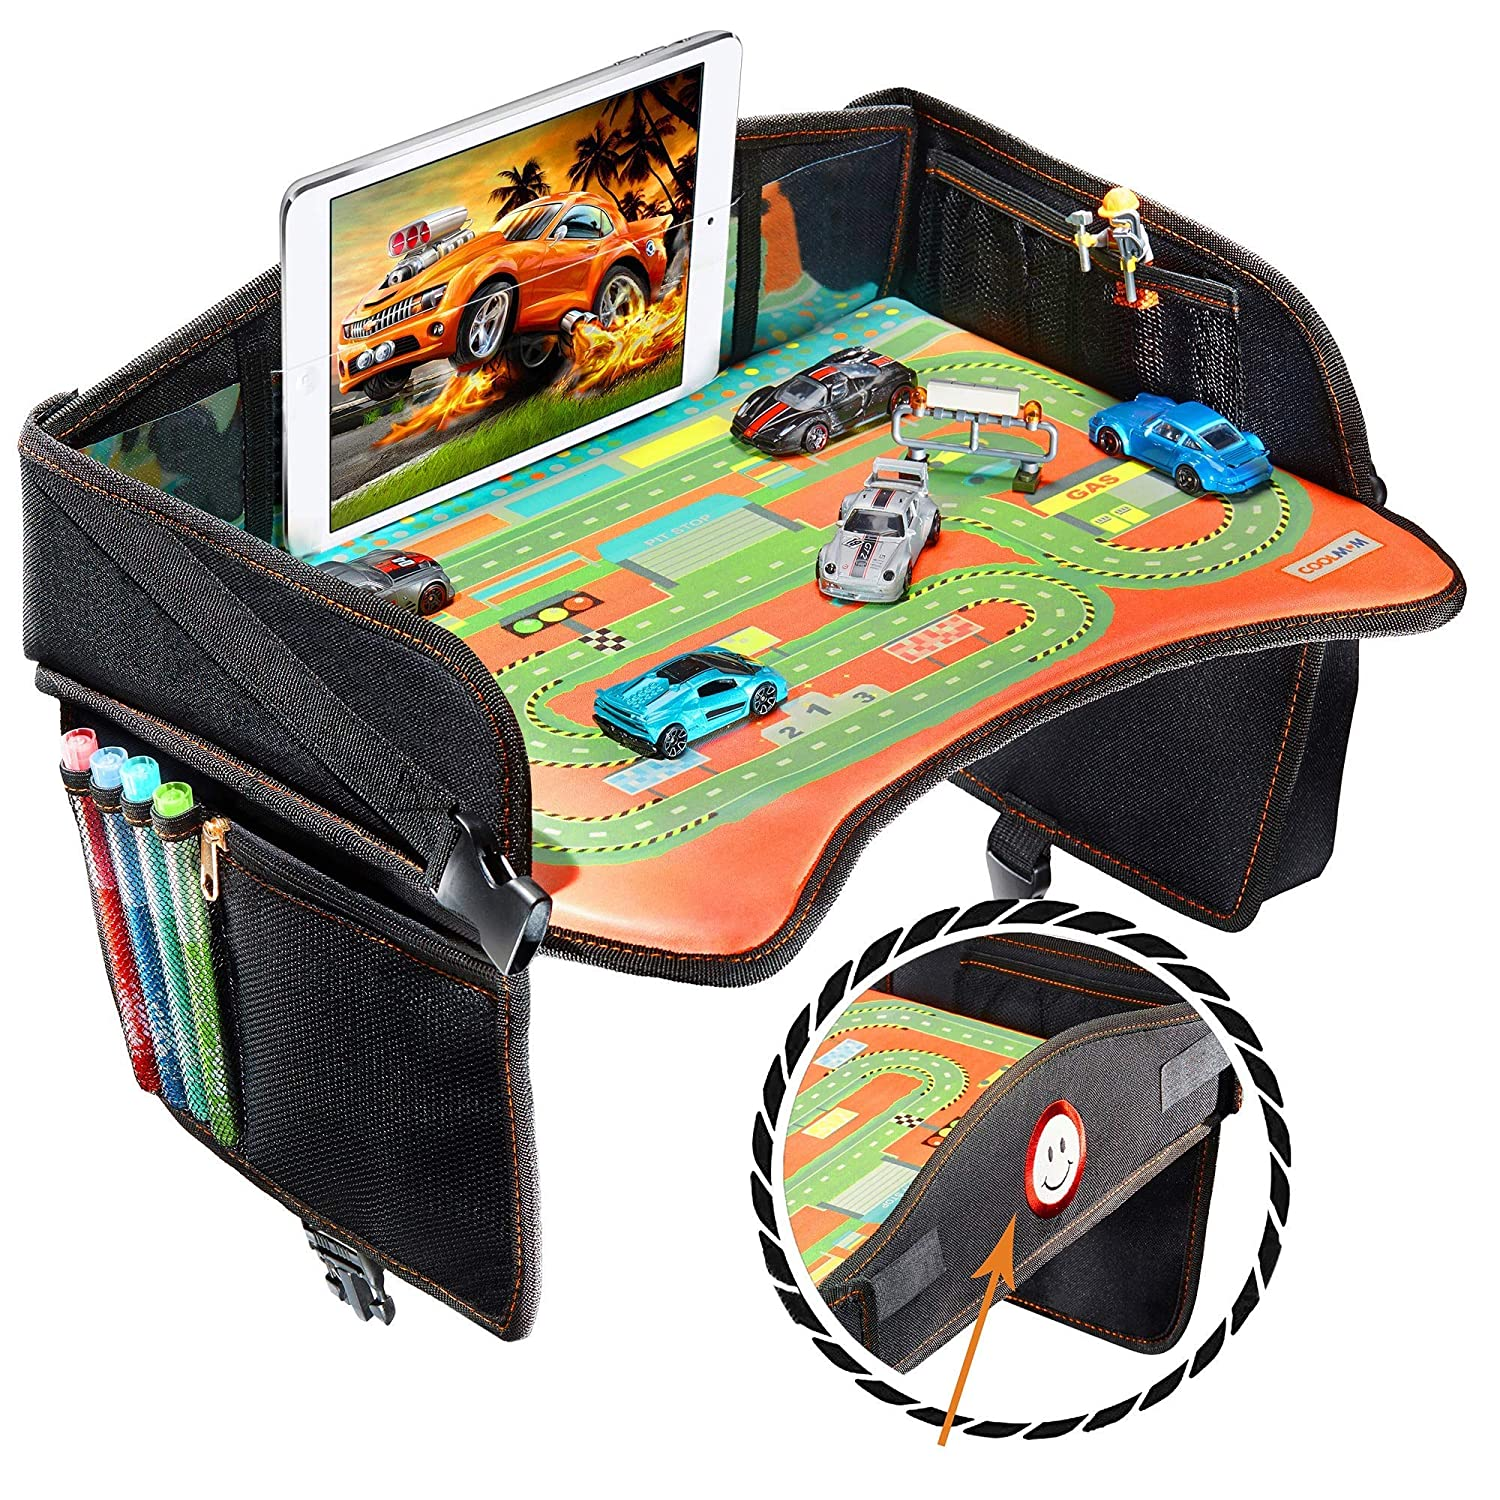 Stroller Table Great for Road Trips Airplane Seat Organizer Toddler auto Snack Holder Kids Carseat Travel Lap Desk for Eating Activity Tray Car Travel Tray for Kids